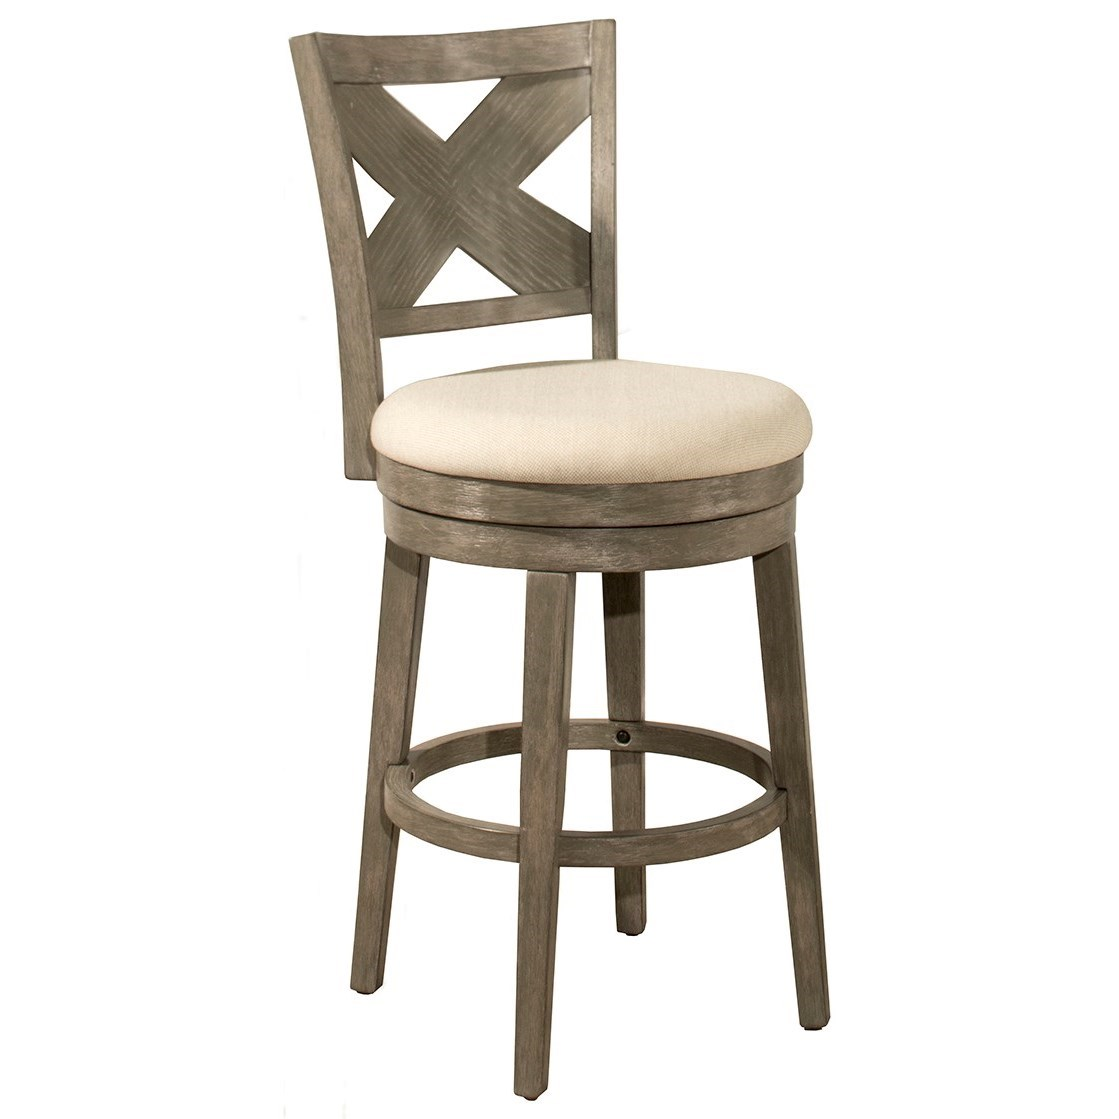 "Wood Stools 30"" Swivel Bar Stool by Hillsdale at SuperStore"